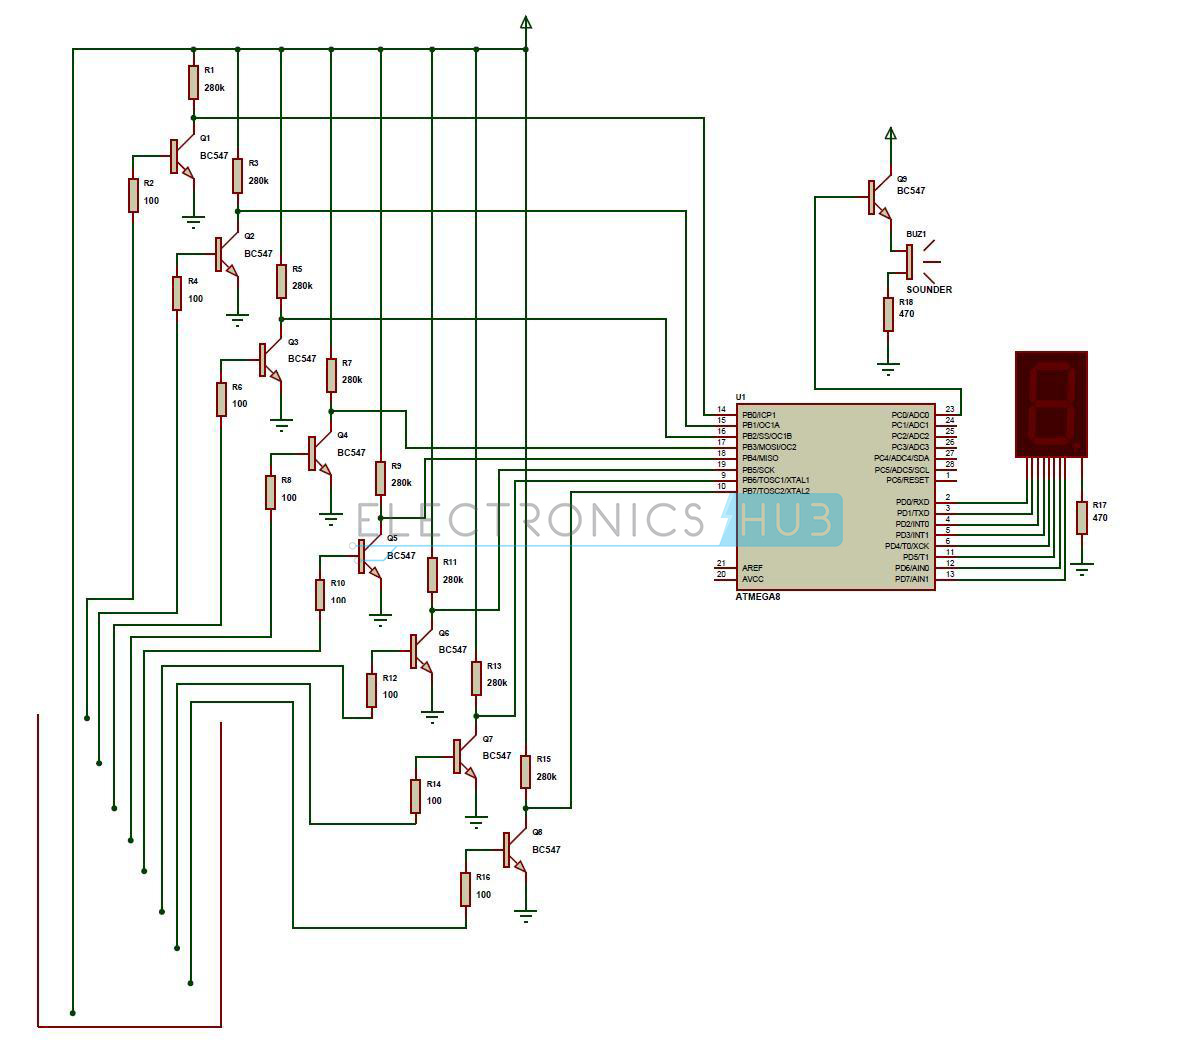 Water Level Circuit Diagram Free Wiring For You Relay Working Indicator Project Using Avr With